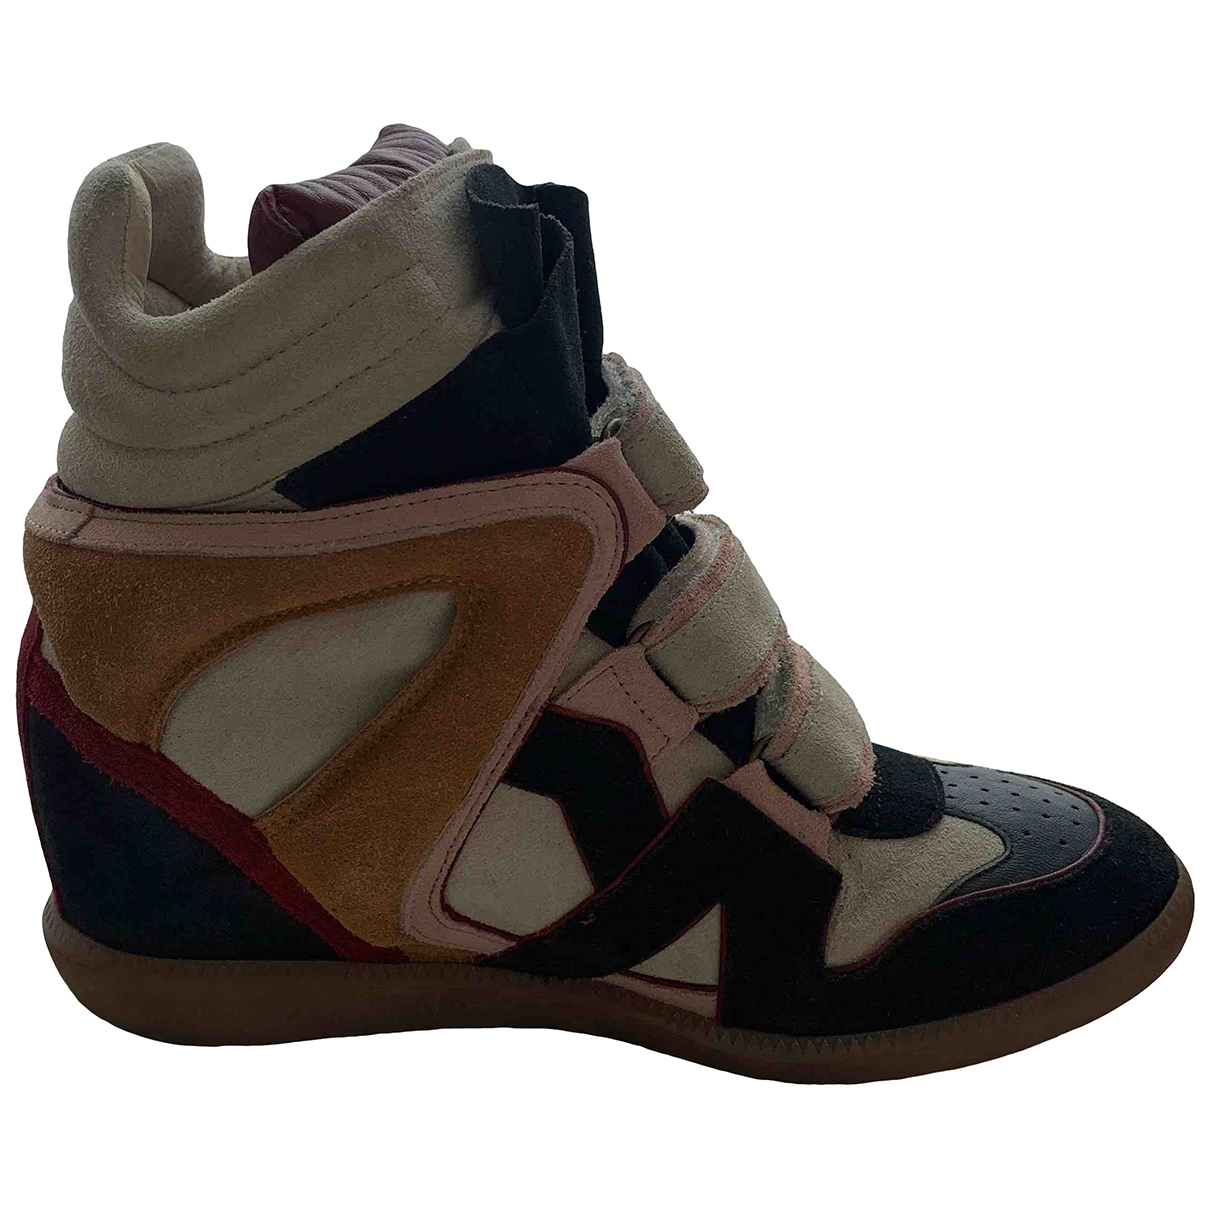 Isabel Marant Beckett Multicolour Leather Trainers for Women 41 EU